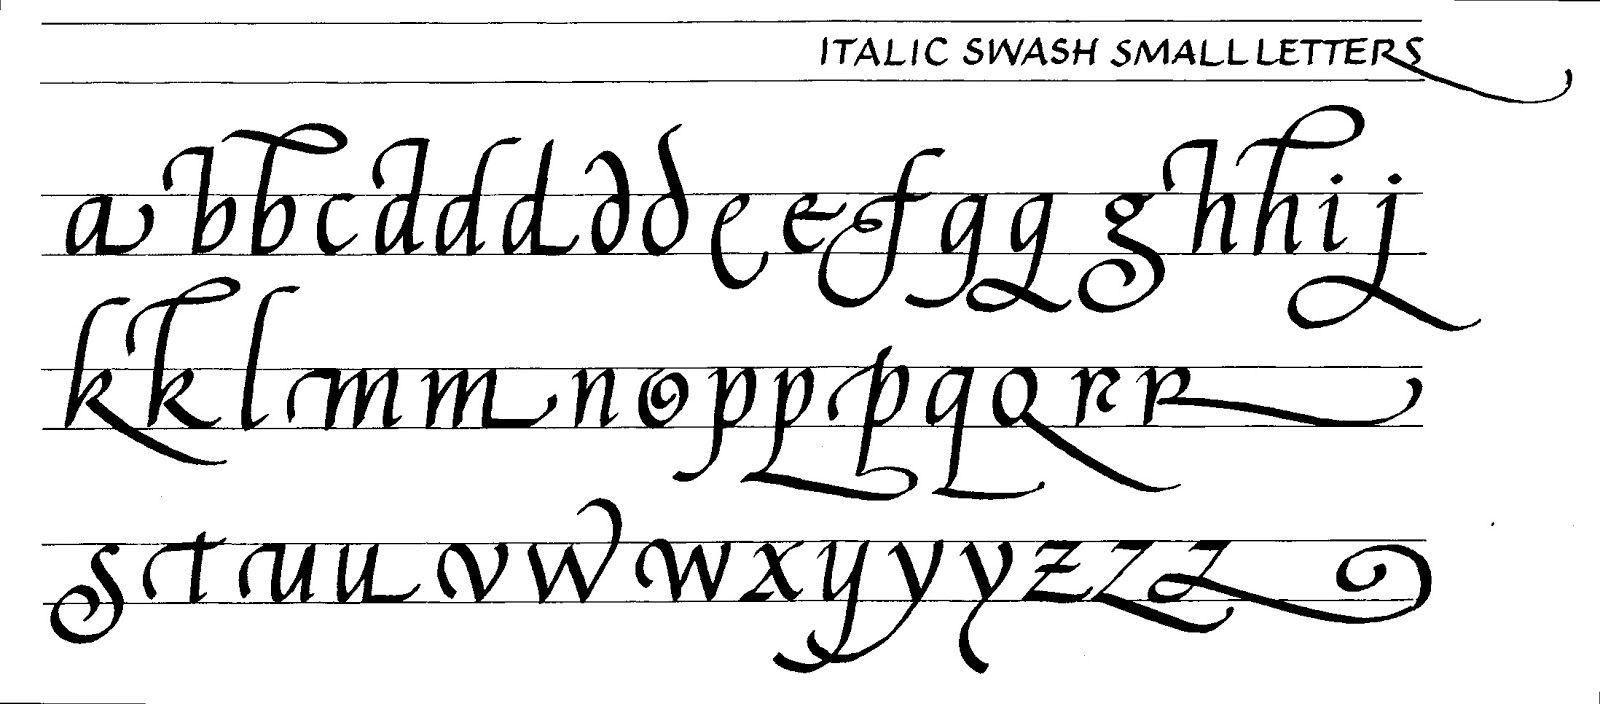 italic swash minuscules | chancery cursive | pinterest | calligraphy